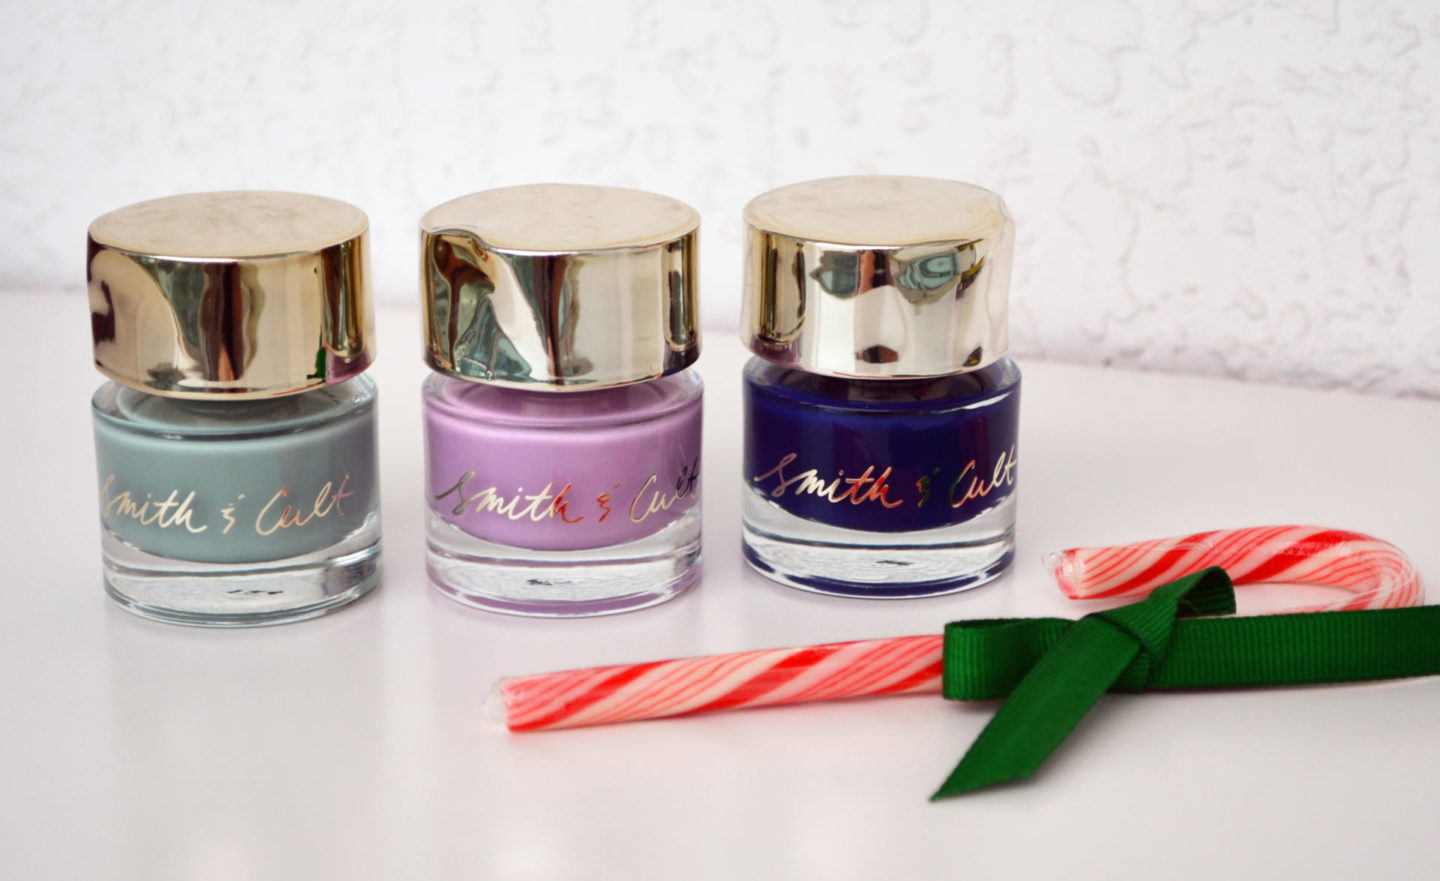 Smith & Cult Diary of a Beauty Junkie Trio